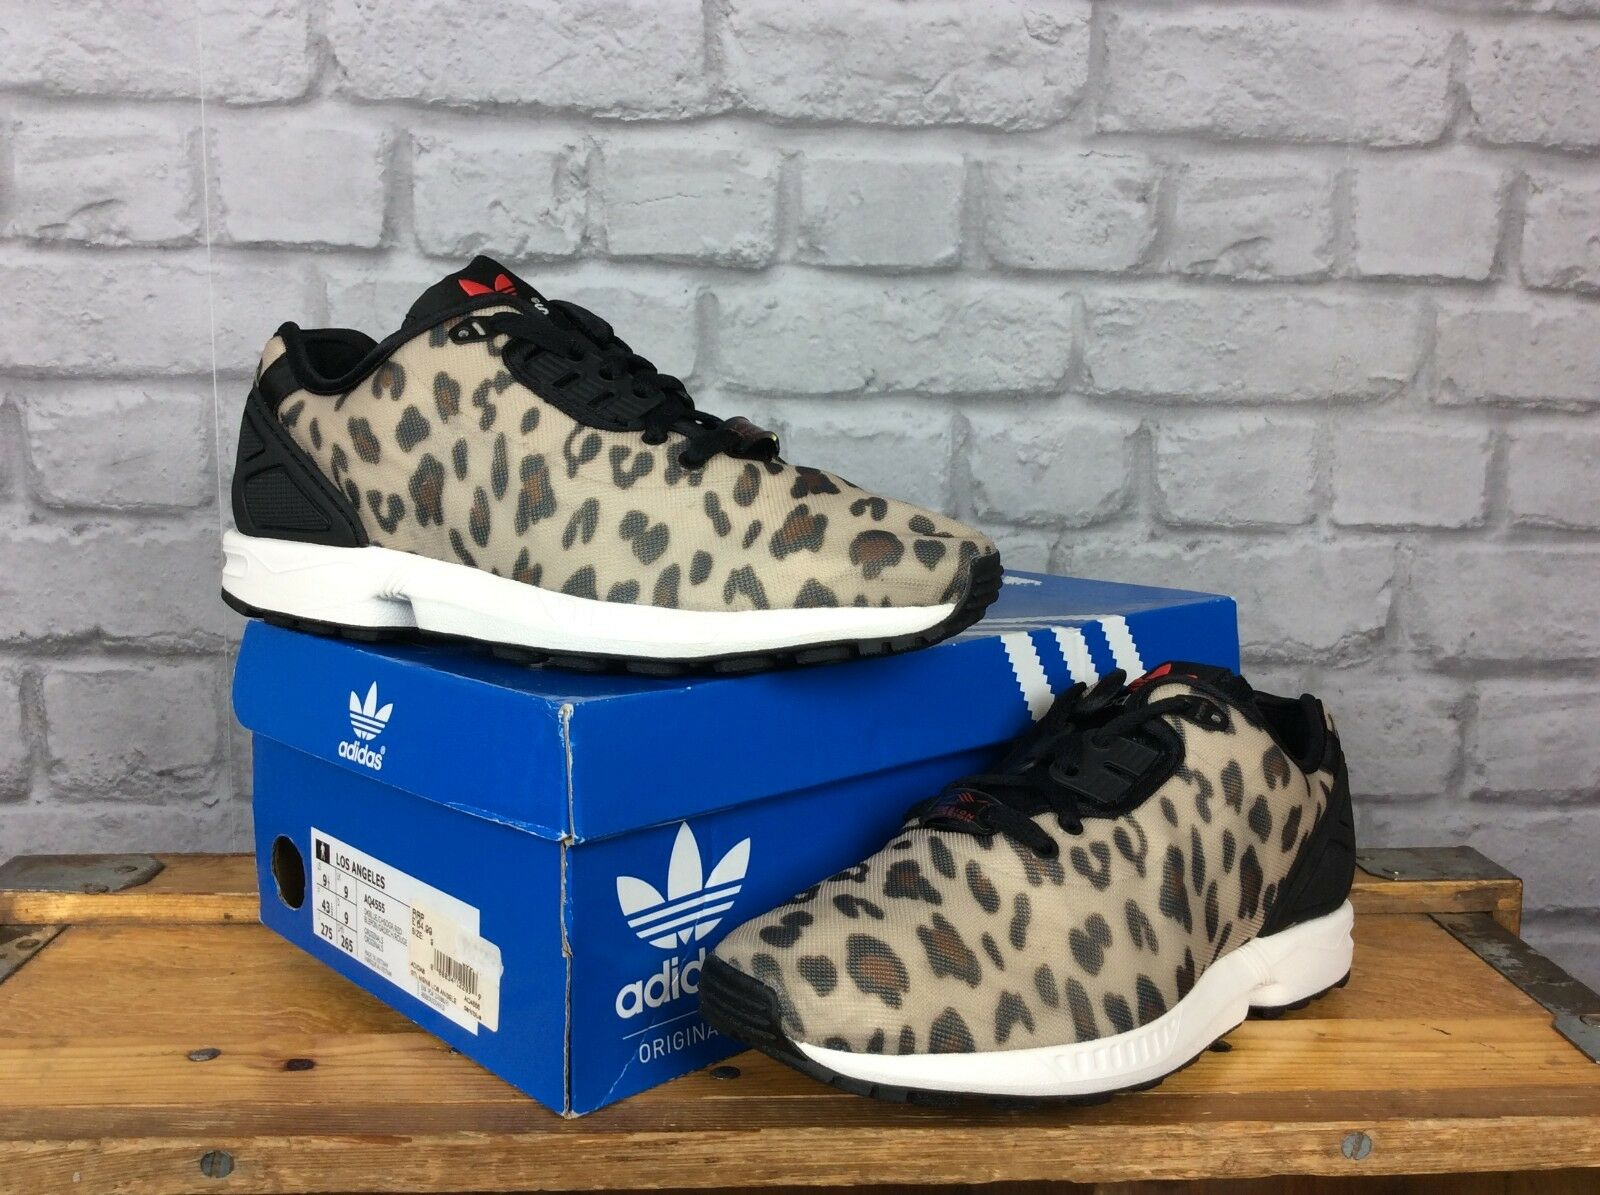 ADIDAS ZX FLUX TORSION Zapatillas DECON Estampado de Leopardo Zapatillas TORSION  Hombre damas d88d8a